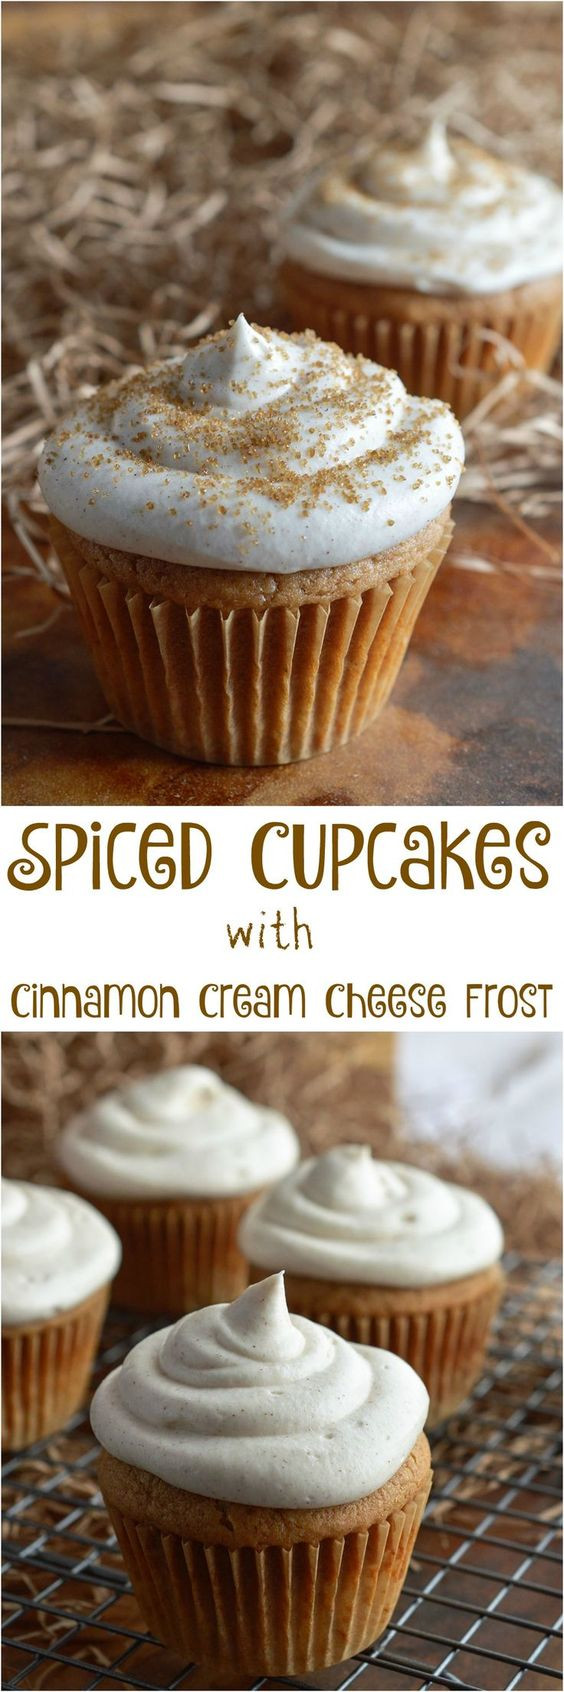 Fall Desserts Pinterest Awesome Fall Desserts Cream Cheese Frosting and Cream On Pinterest